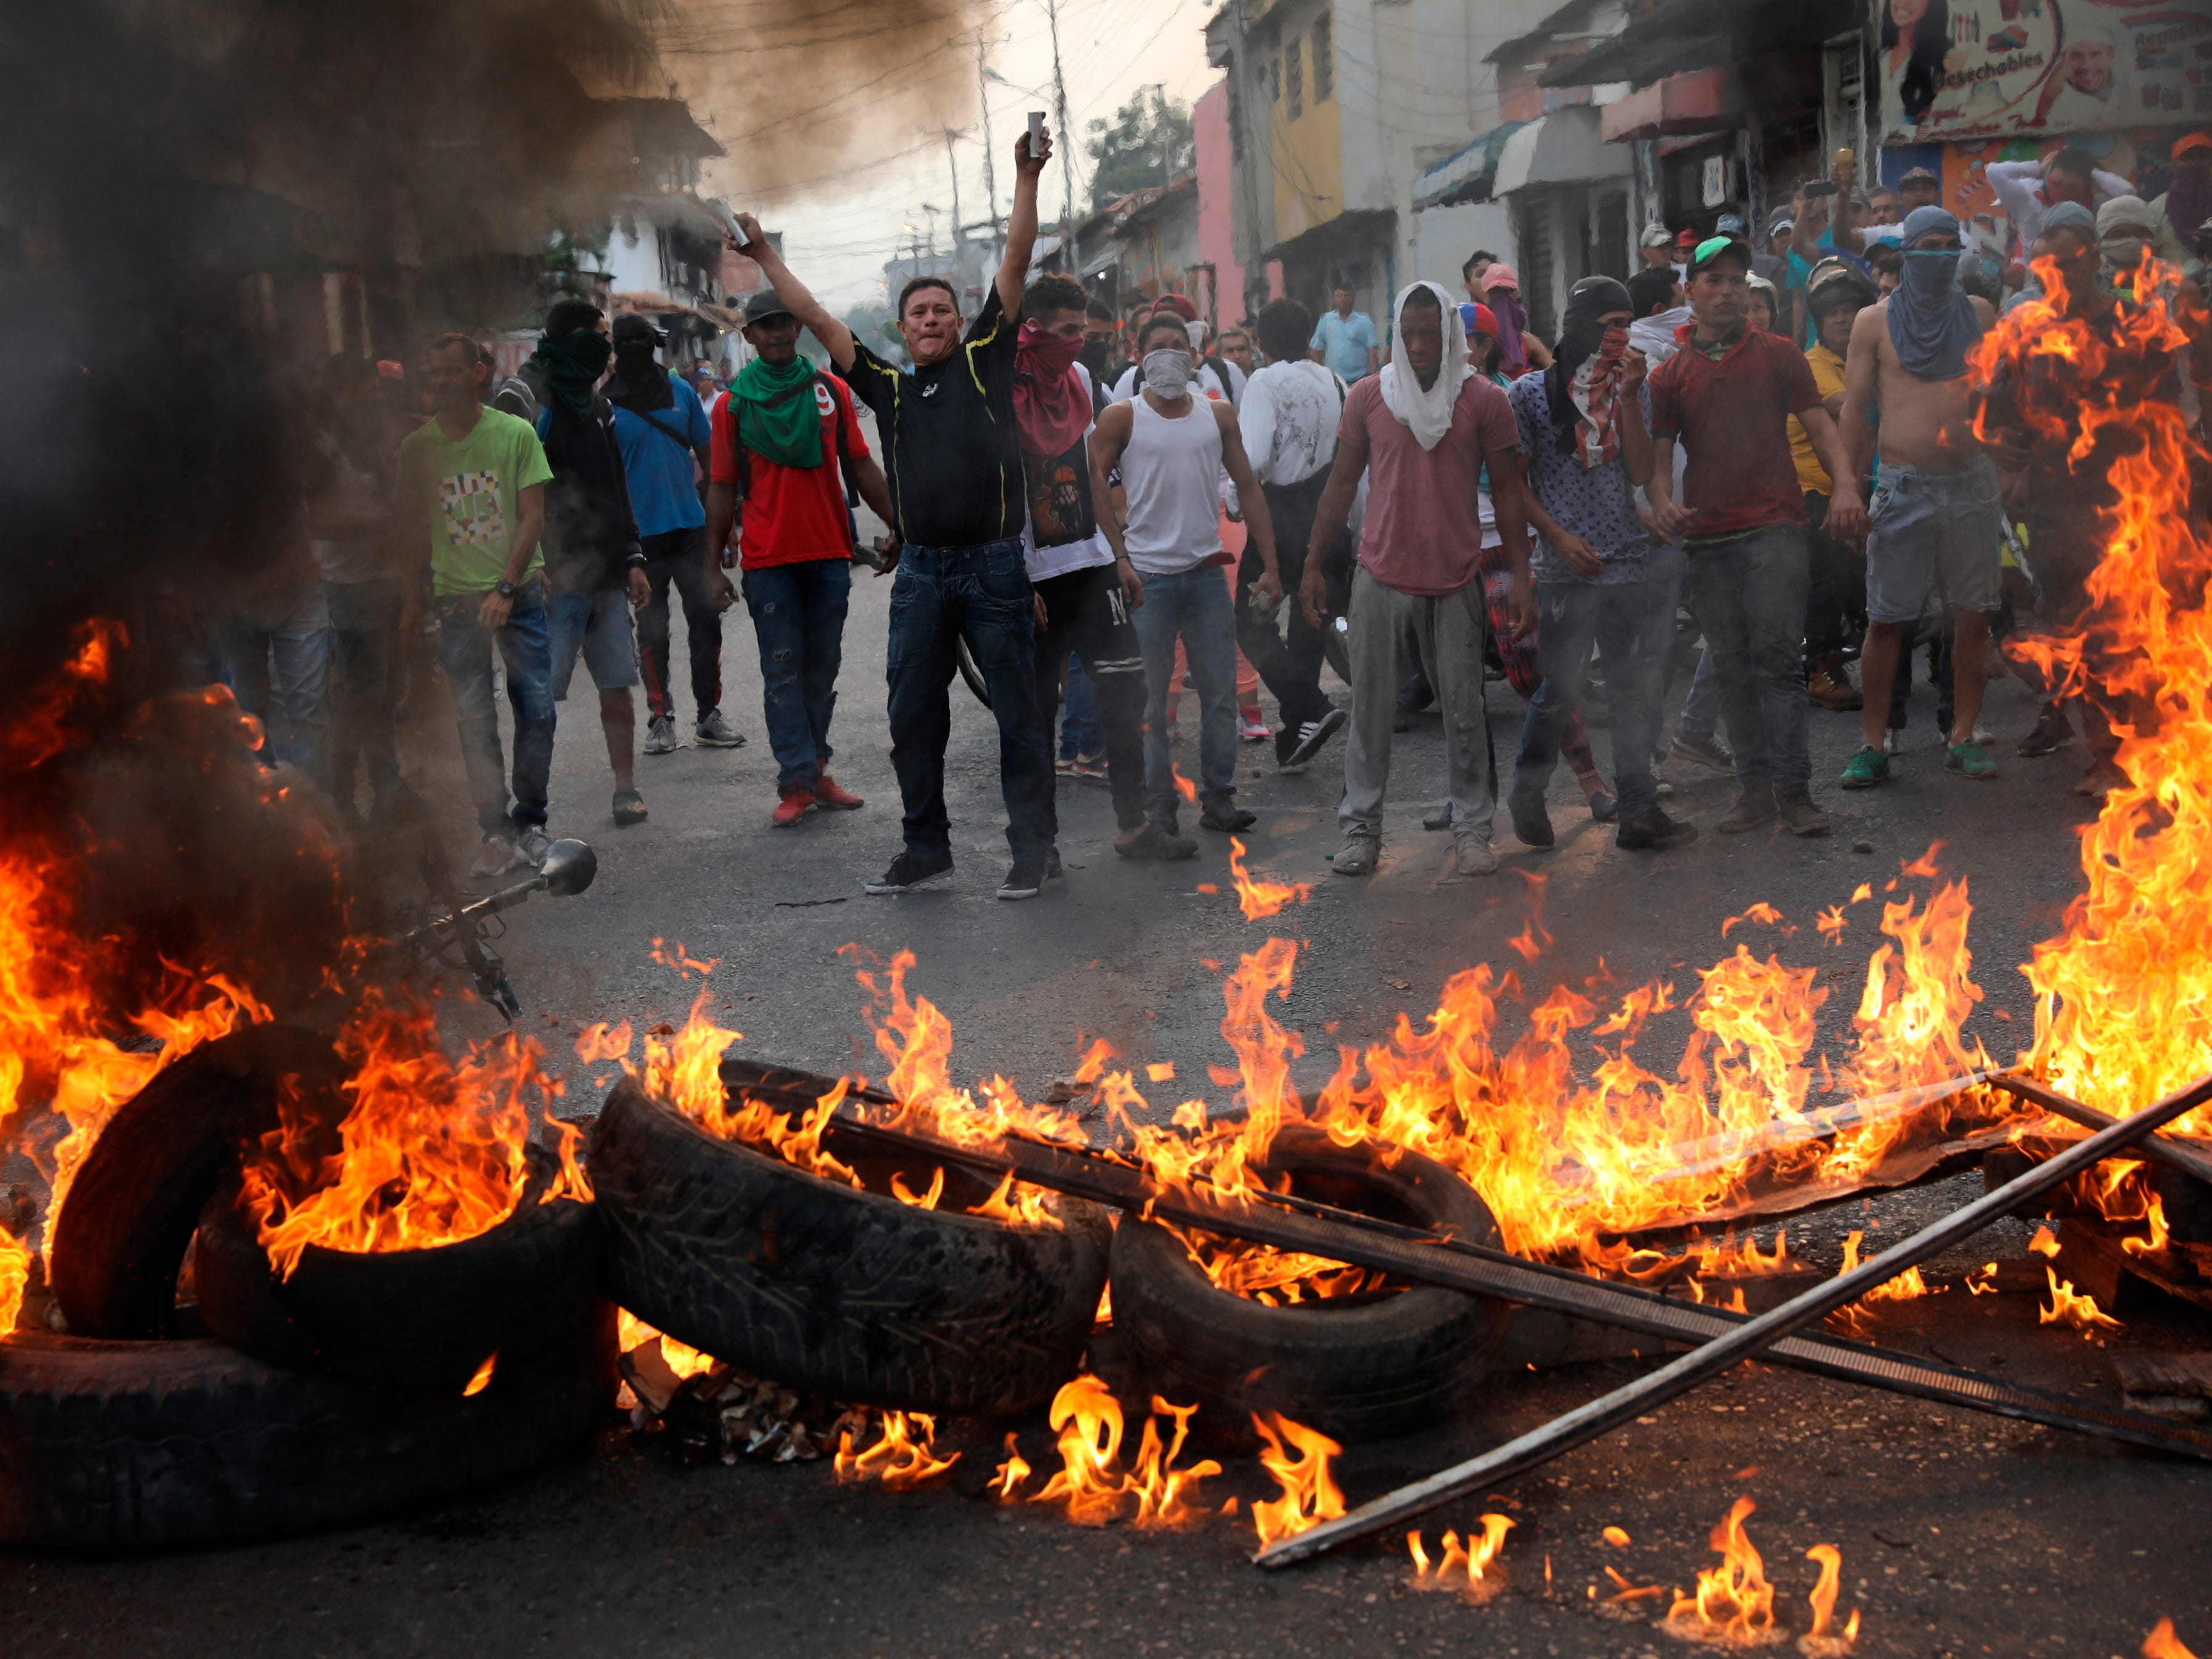 Demonstrators man a barricade during clashes with the Bolivarian National Guard in Urena, Venezuela, near the border with Colombia, Saturday, Feb. 23, 2019.